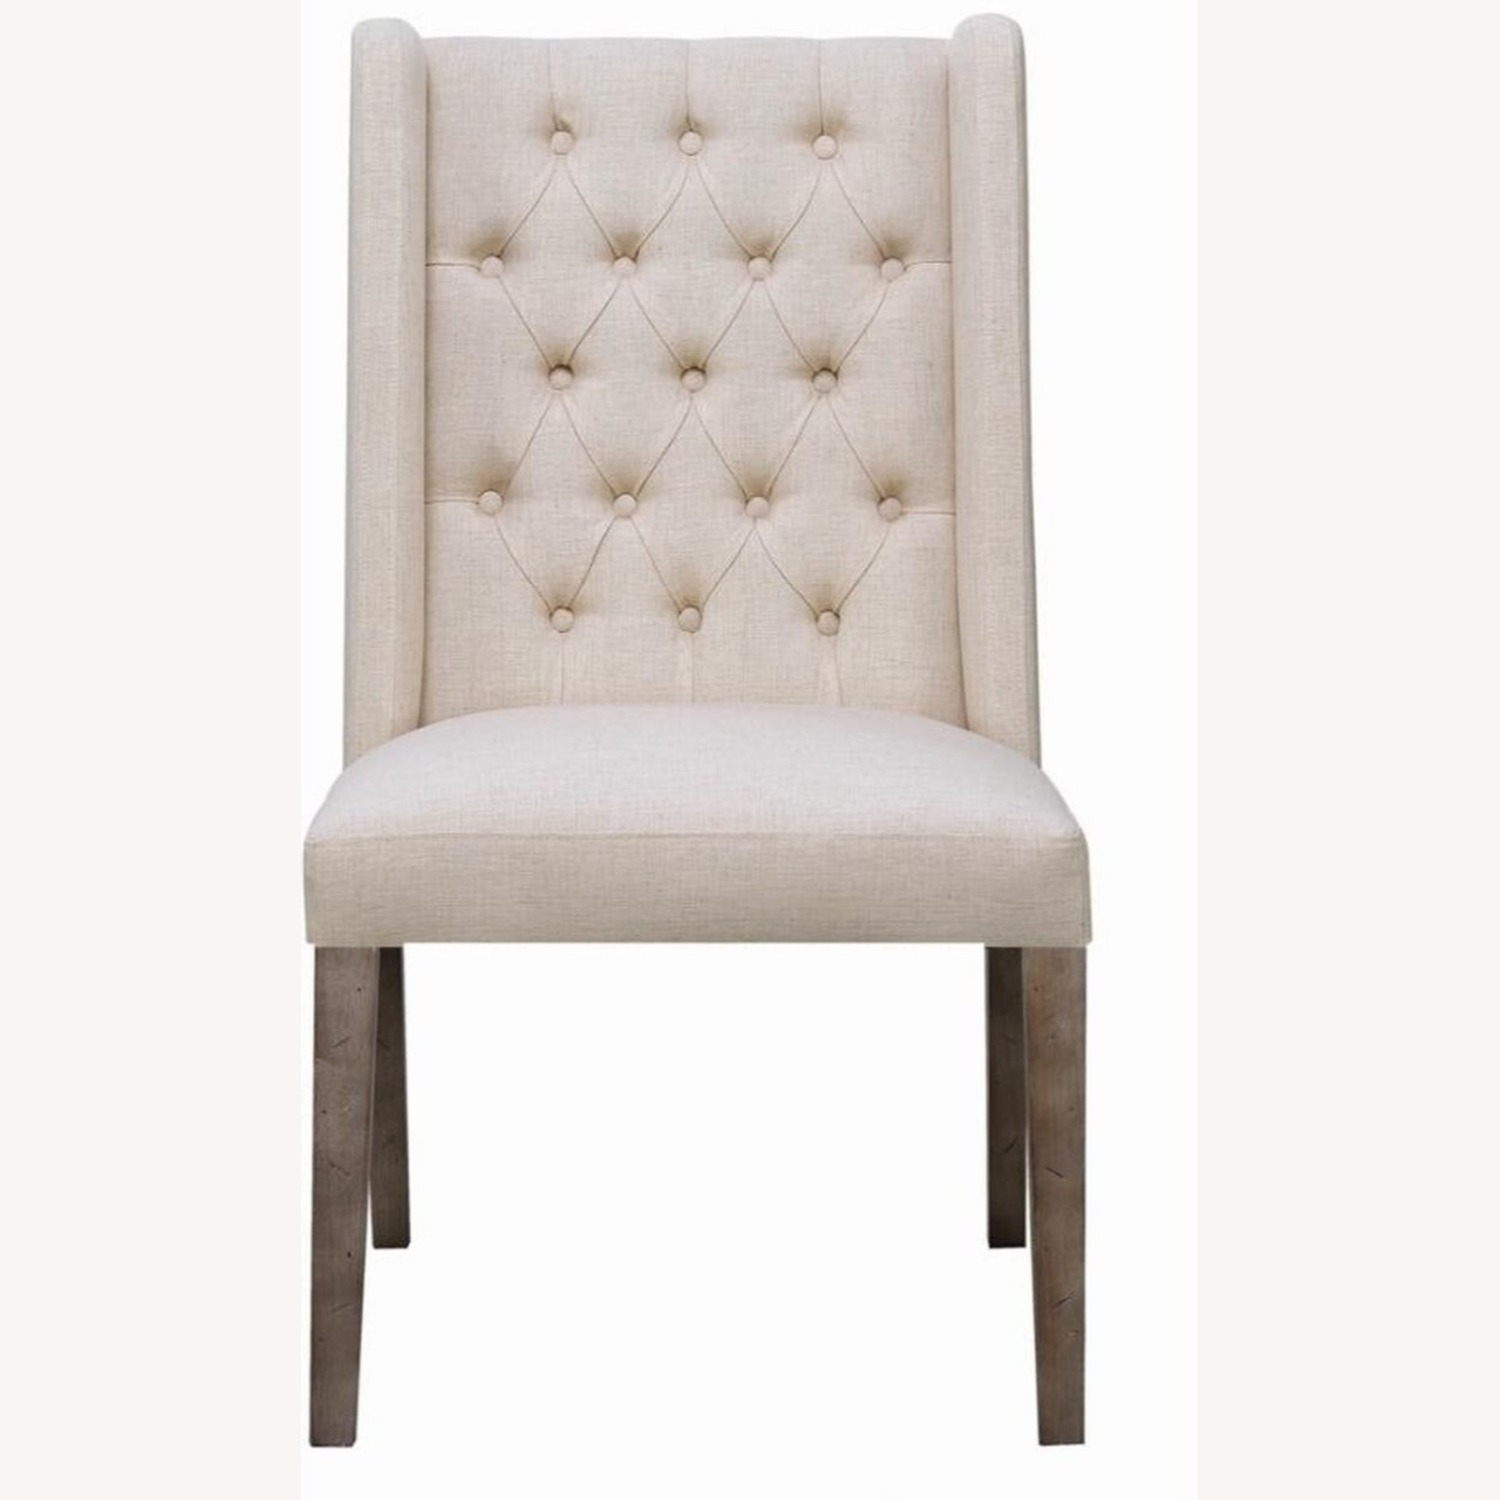 Transitional Side Chair In Beige Fabric - image-1